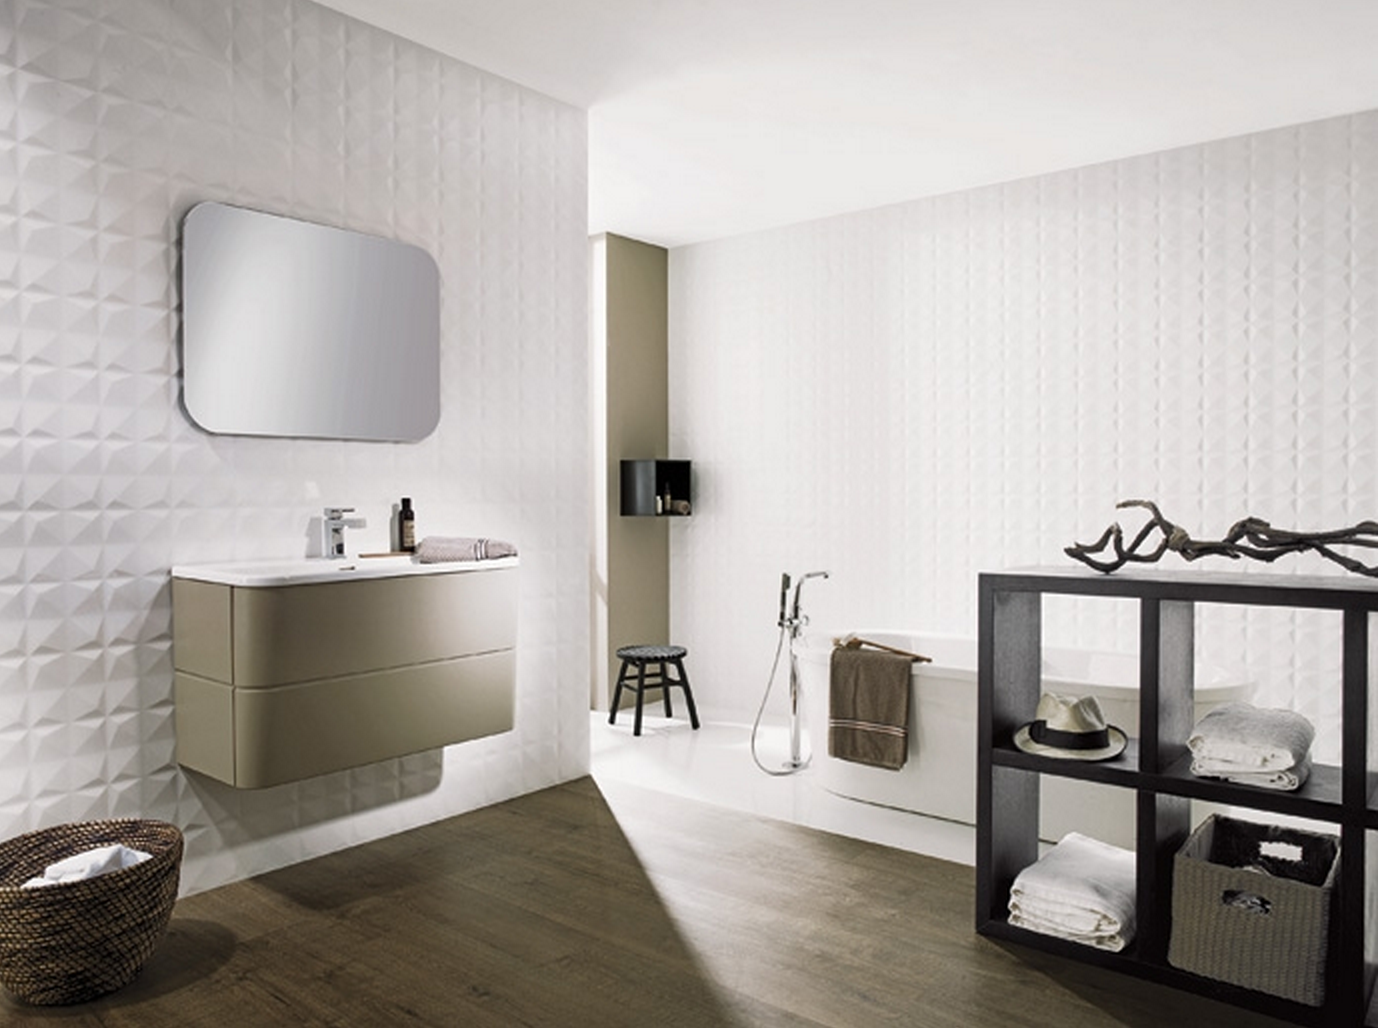 Wall treatment for fireplace, bathroom? (from Porcelanosa) | Tiles ...